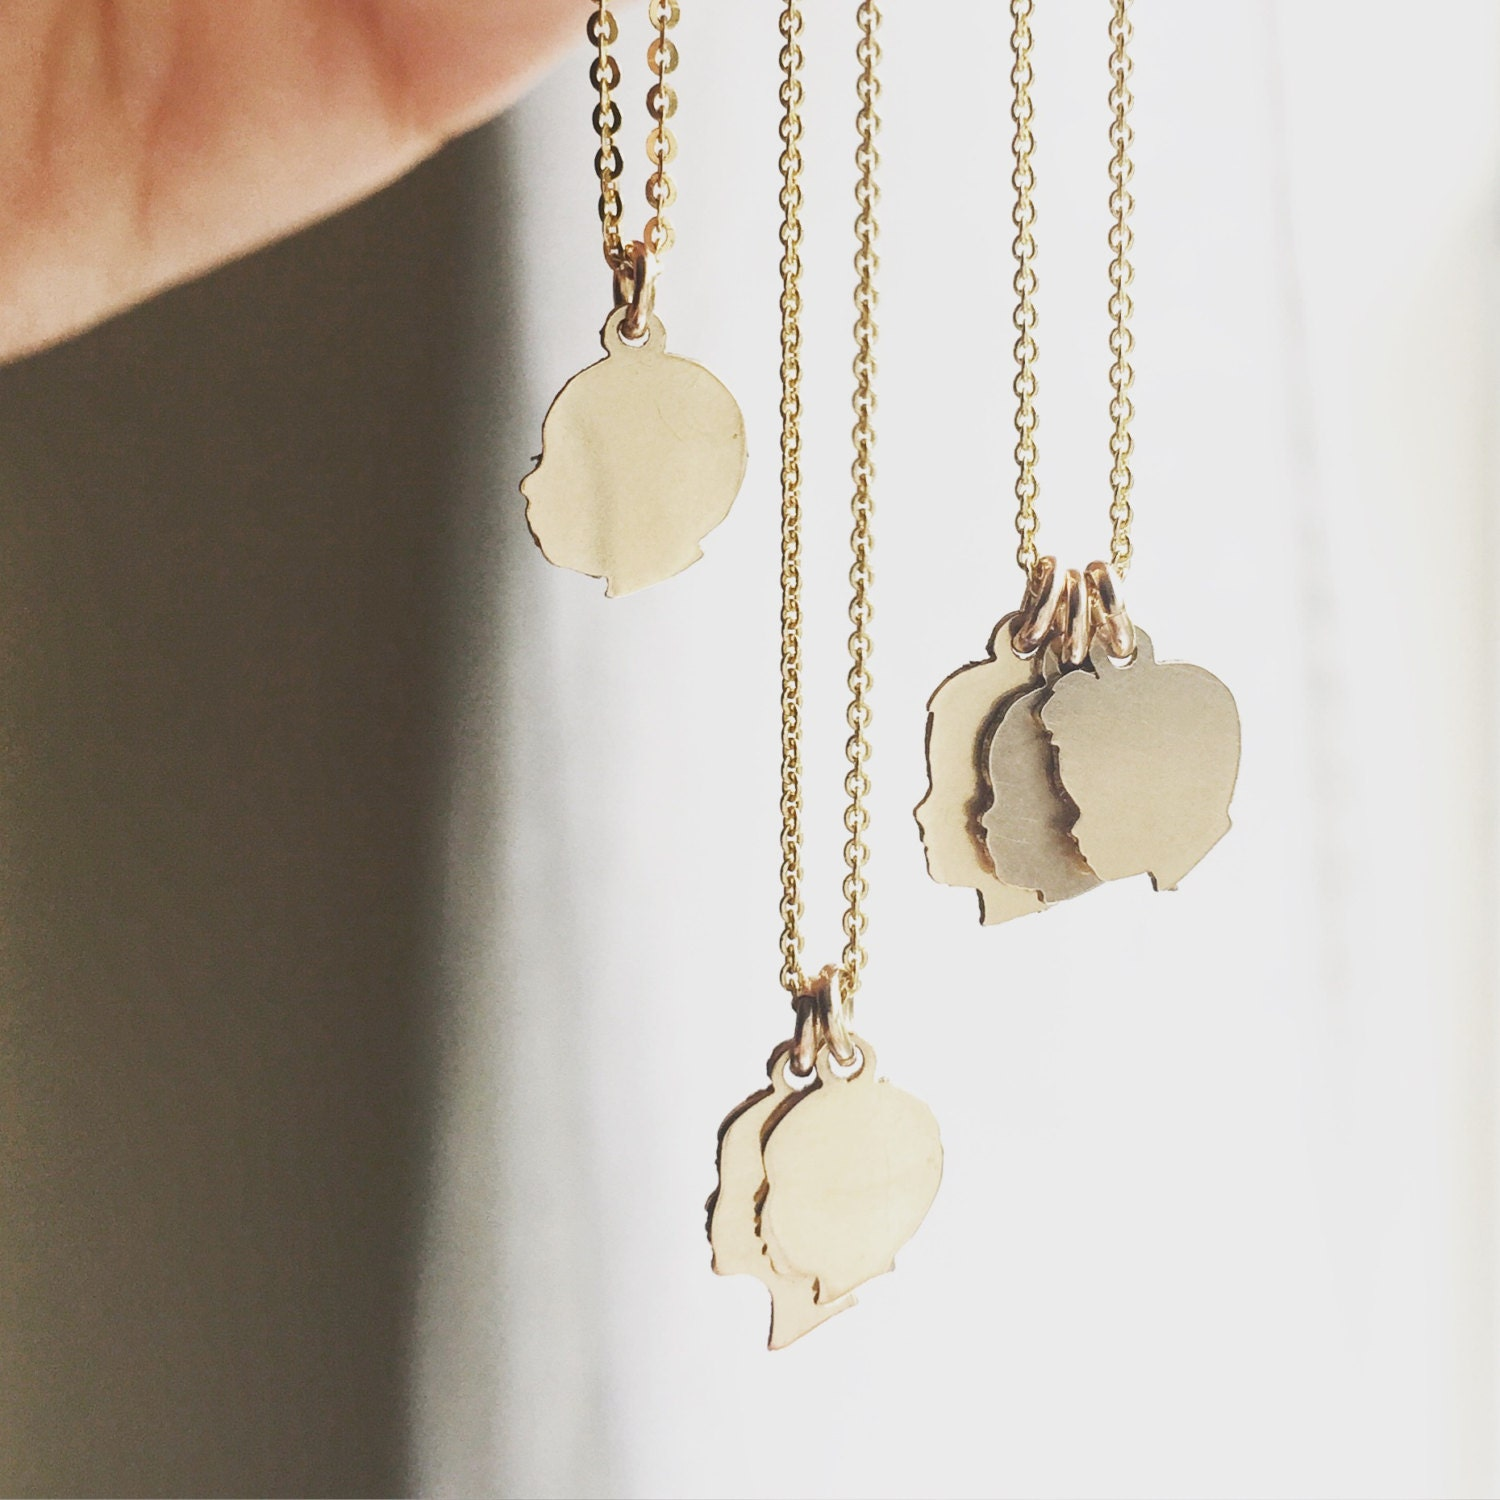 Custom Silhouette Charms Tiny Charm Necklace 14K Gold Filled